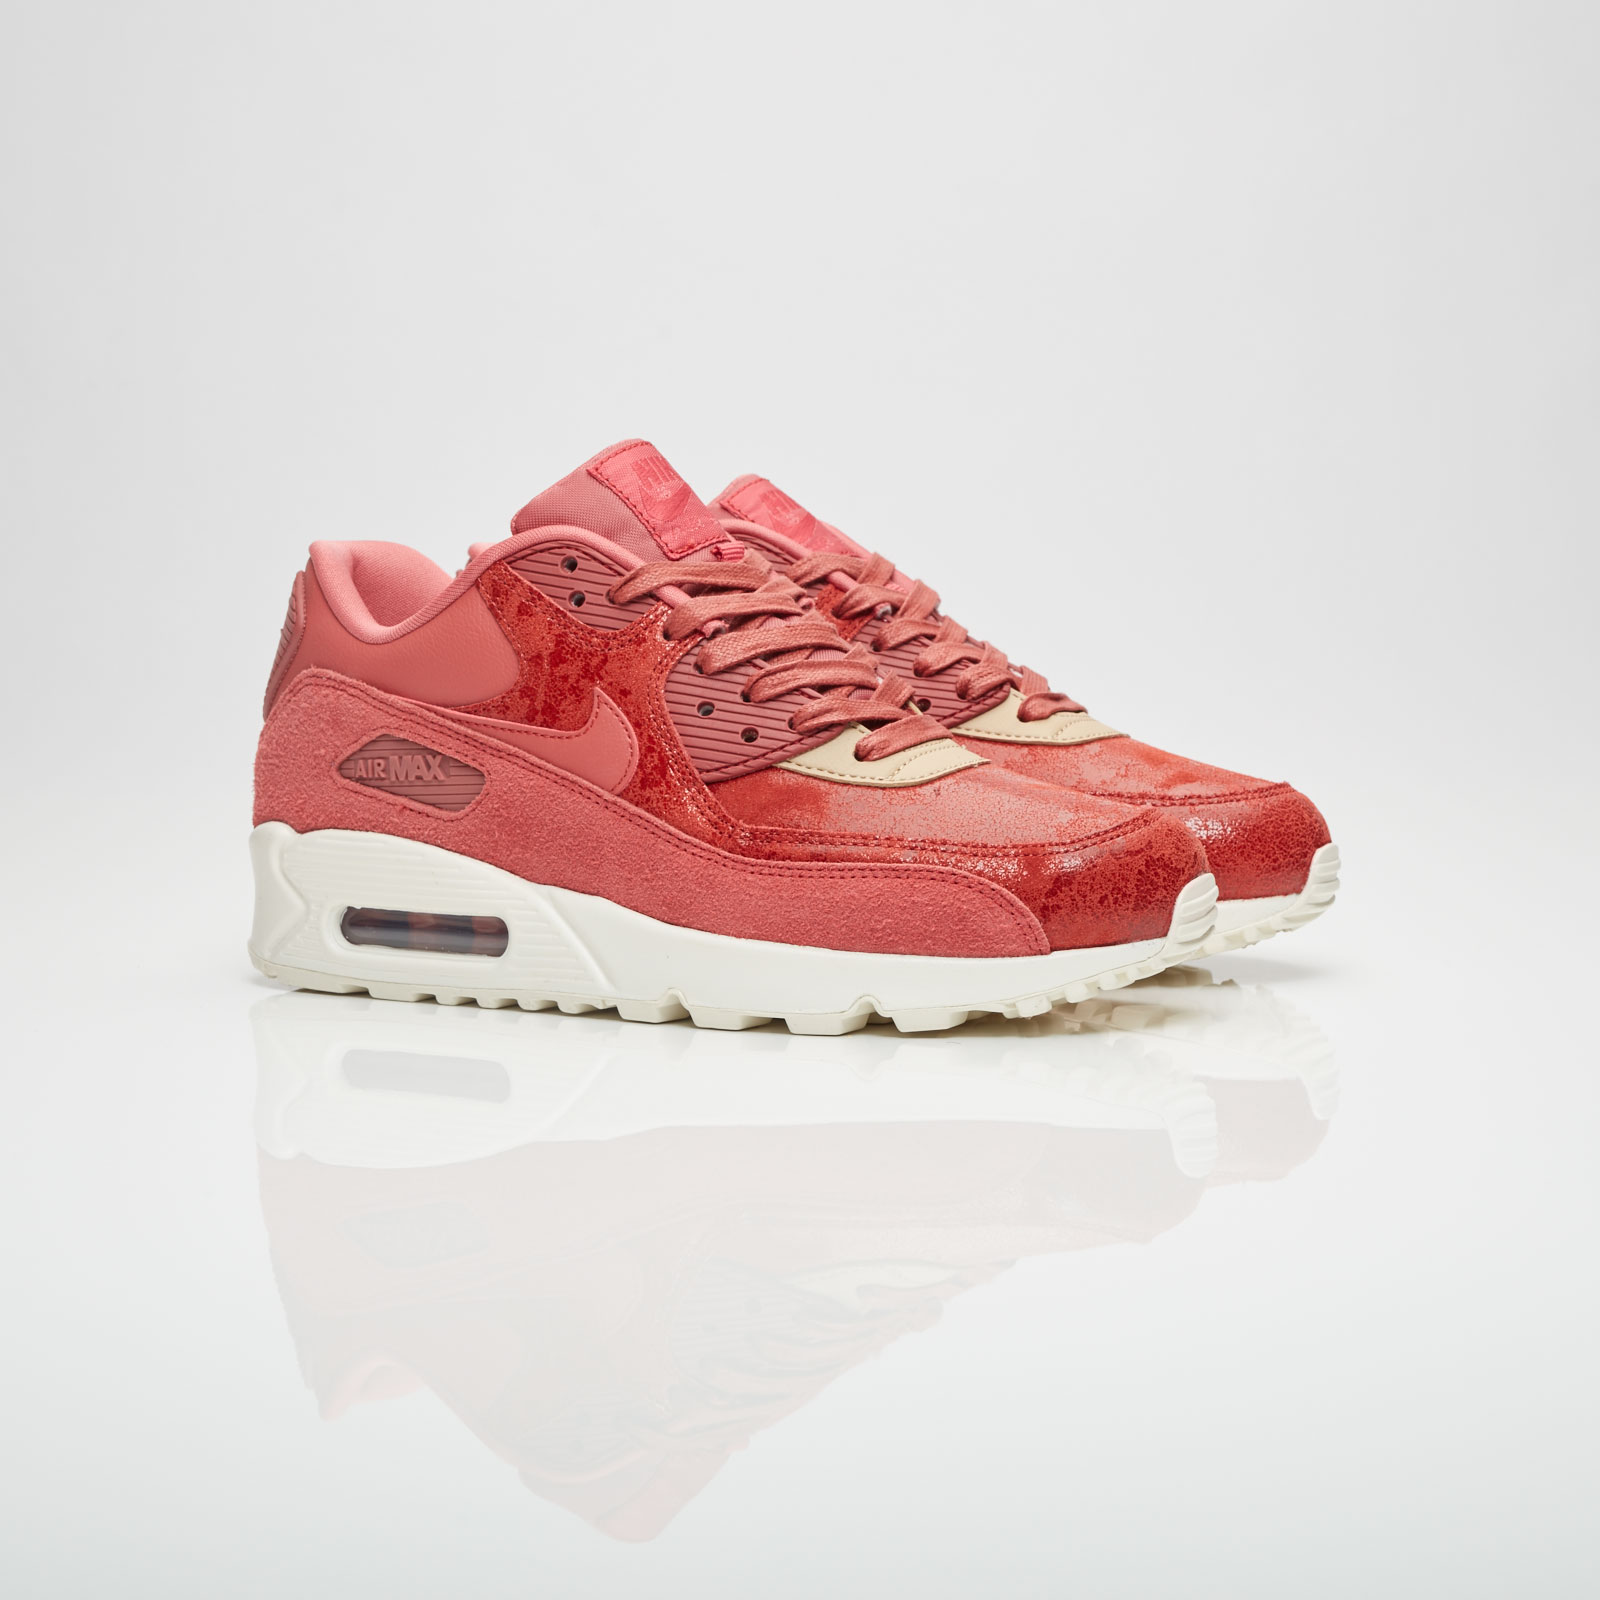 Nike Wmns Air Max 90 SD 920959 800 Sneakersnstuff